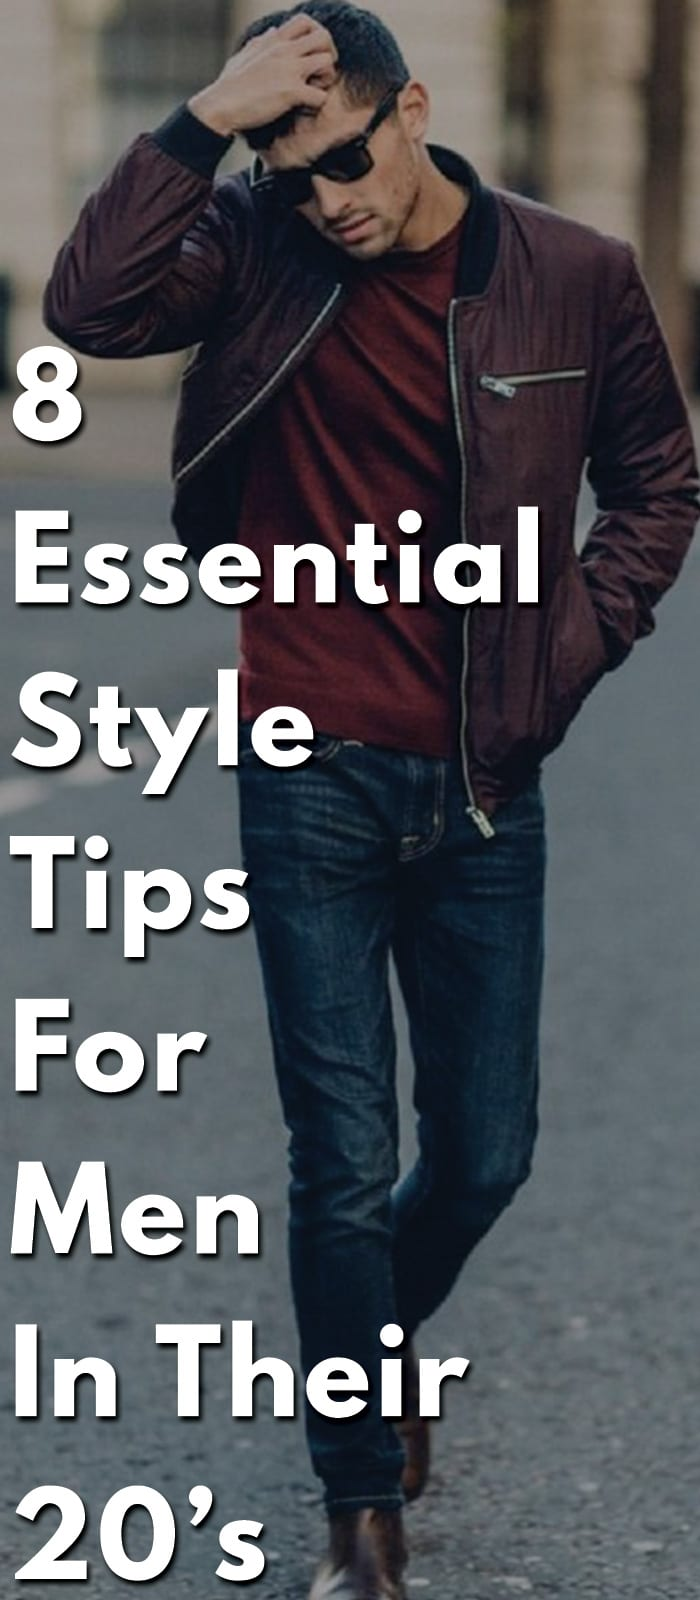 8-Essential-Style-tips-for-men-in-their-20's